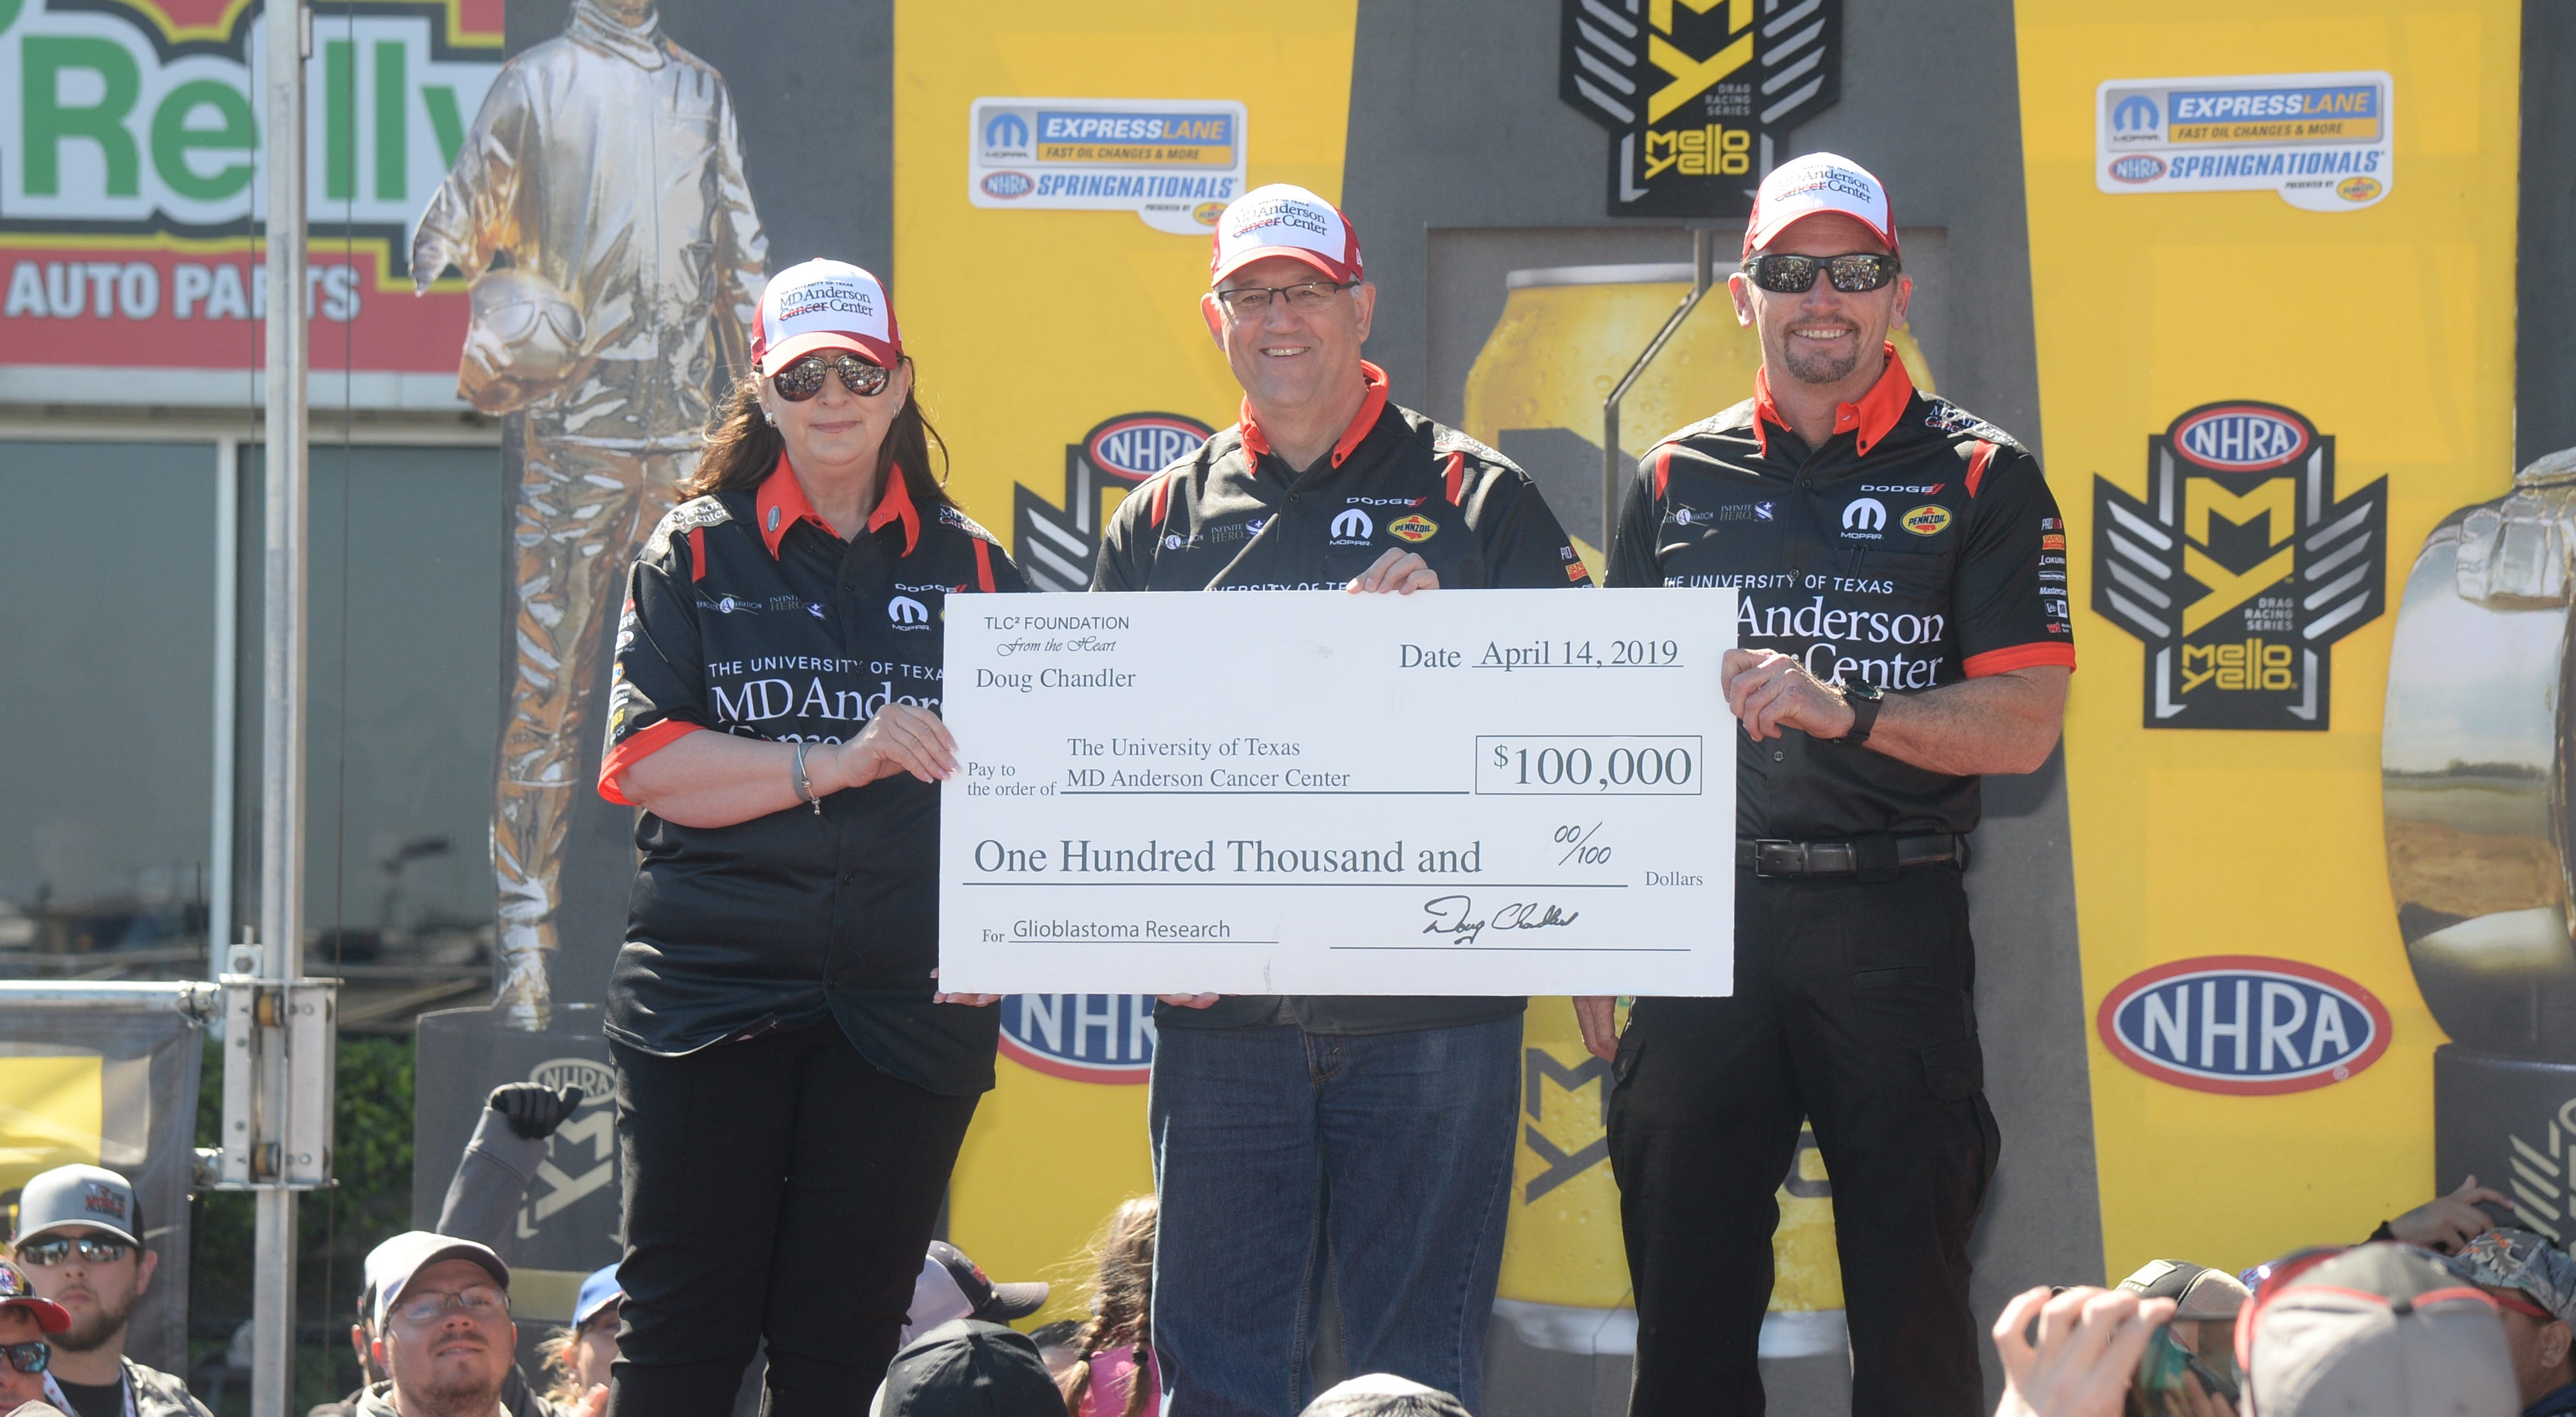 Left to right Judy Pittman , Bobby Dean and Jack Beckman present $100,000 donation check to the MD Anderson Cancer Center, on behalf of Doug Chandler and his TLC Foundation in honor of Doug Chandler's late wife, Terry Chandler.